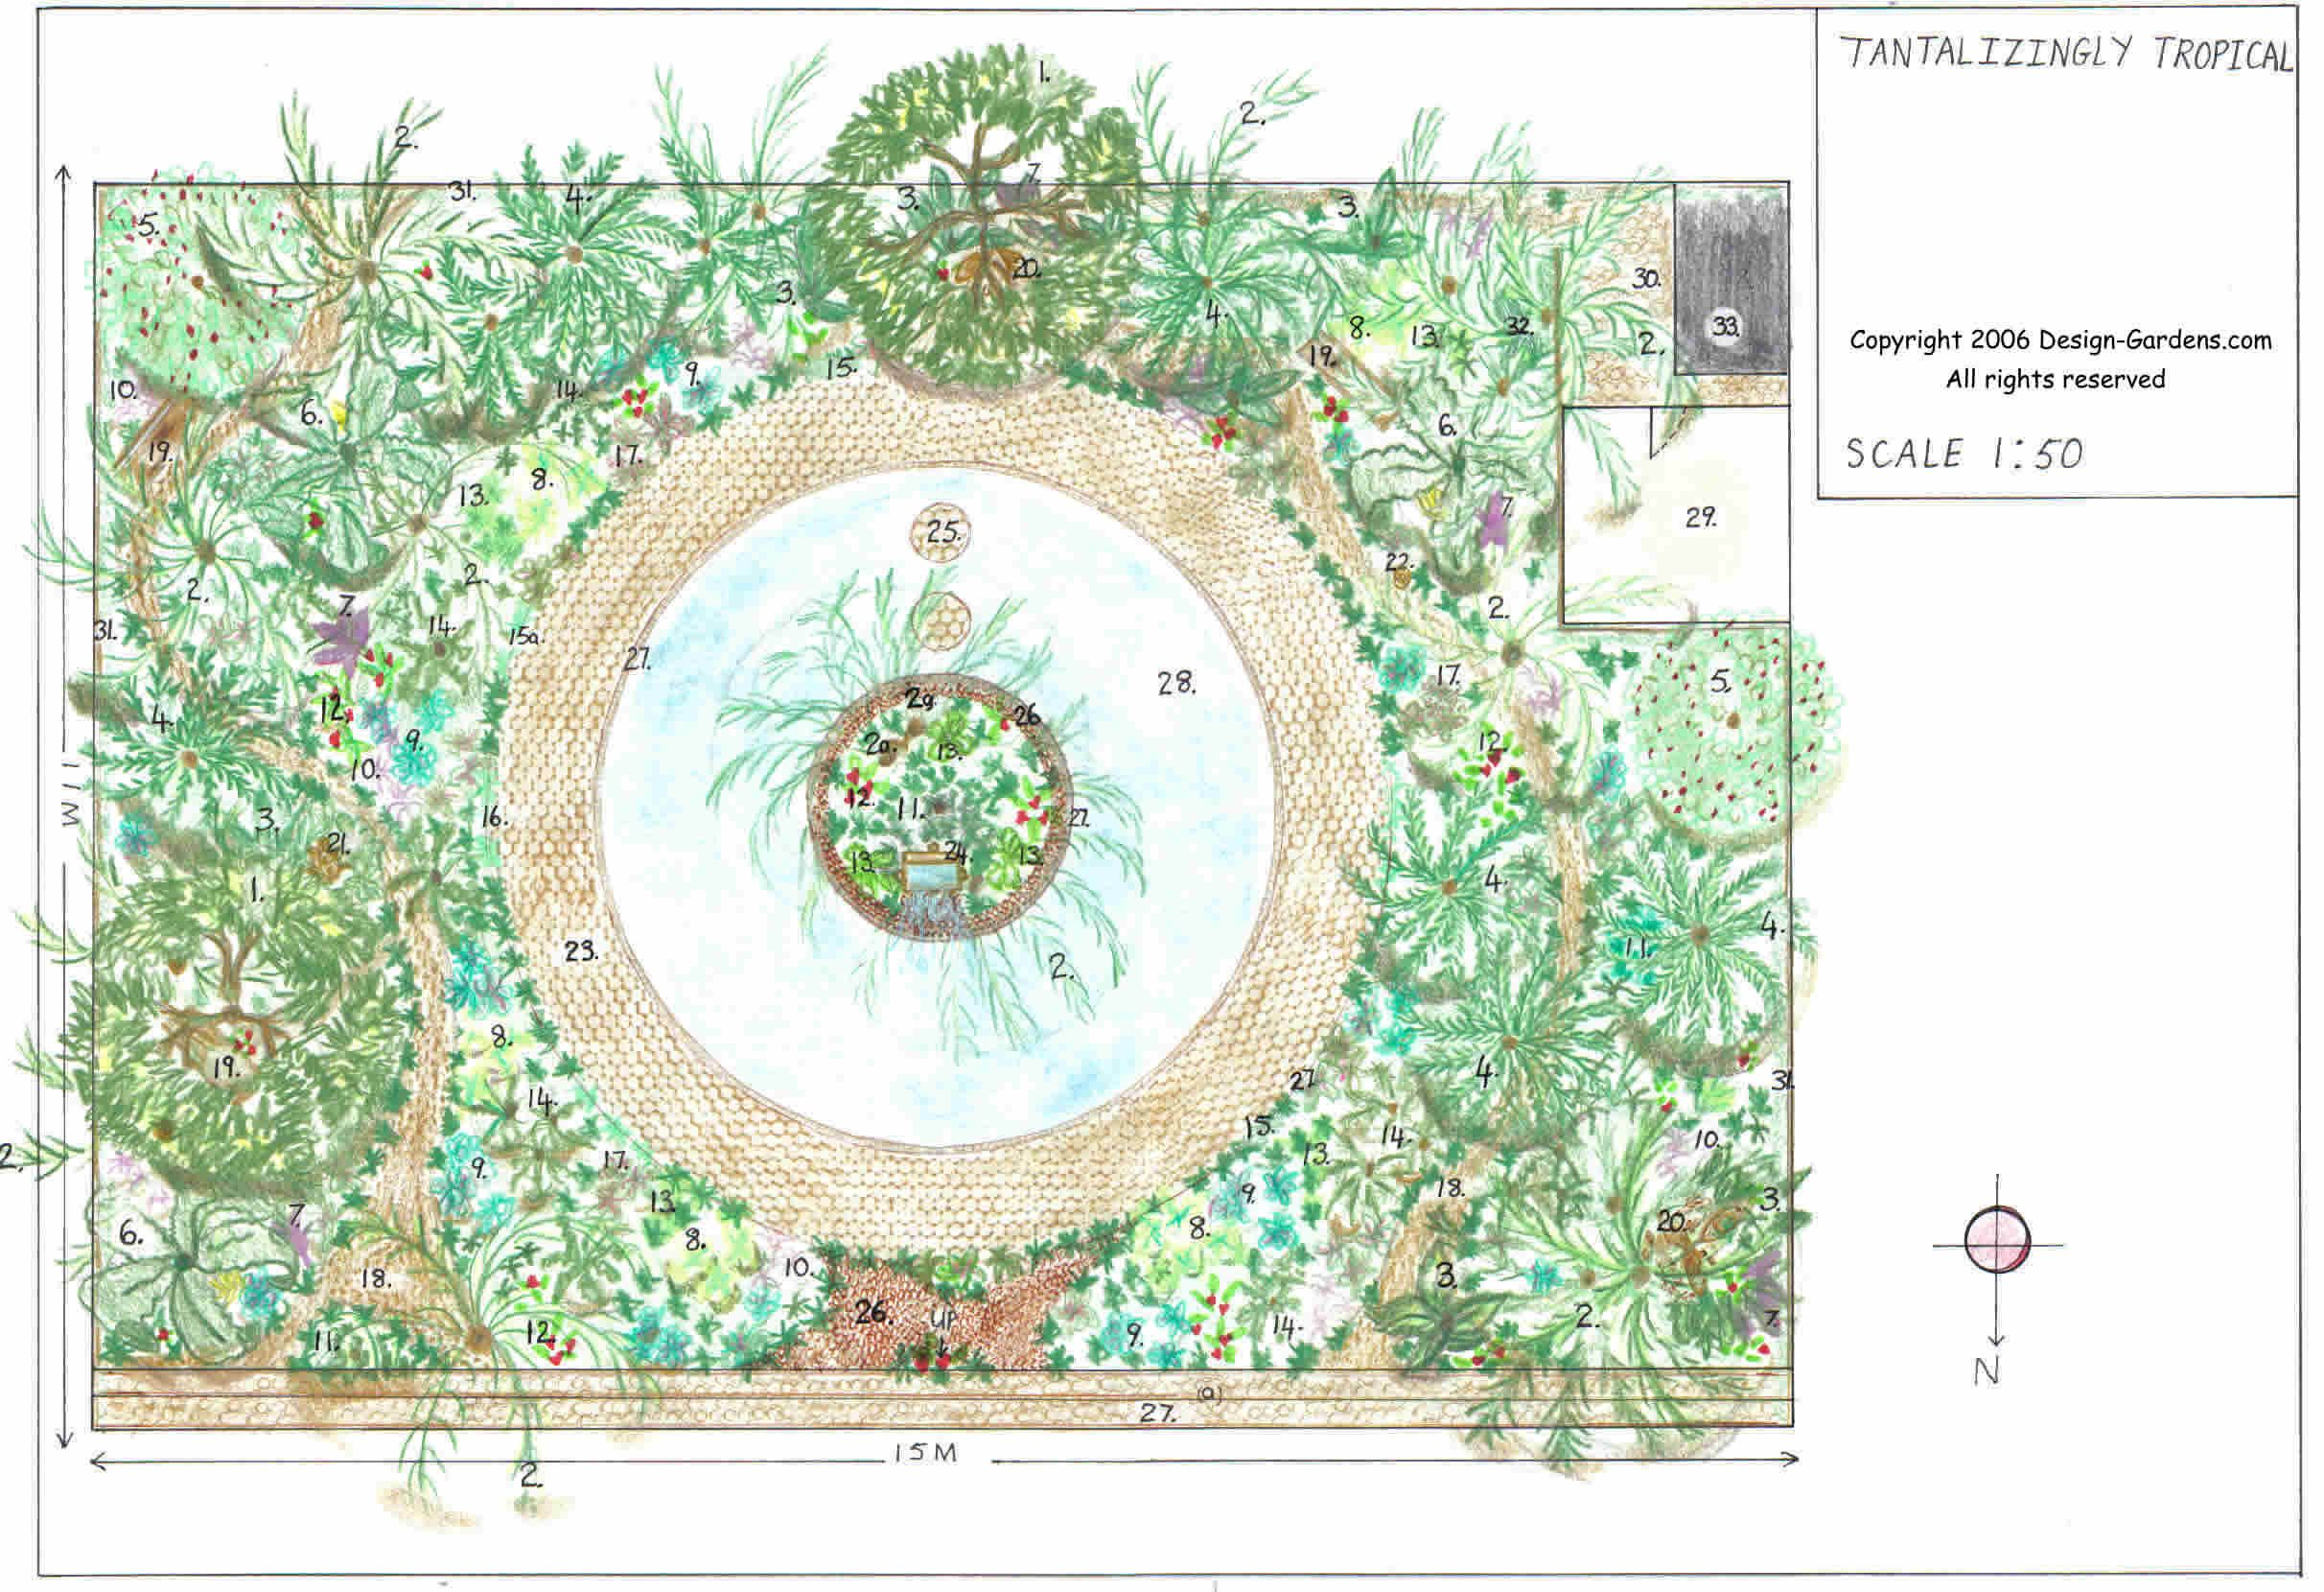 Garden plan garden plans pinterest garden planning for Garden layouts designs